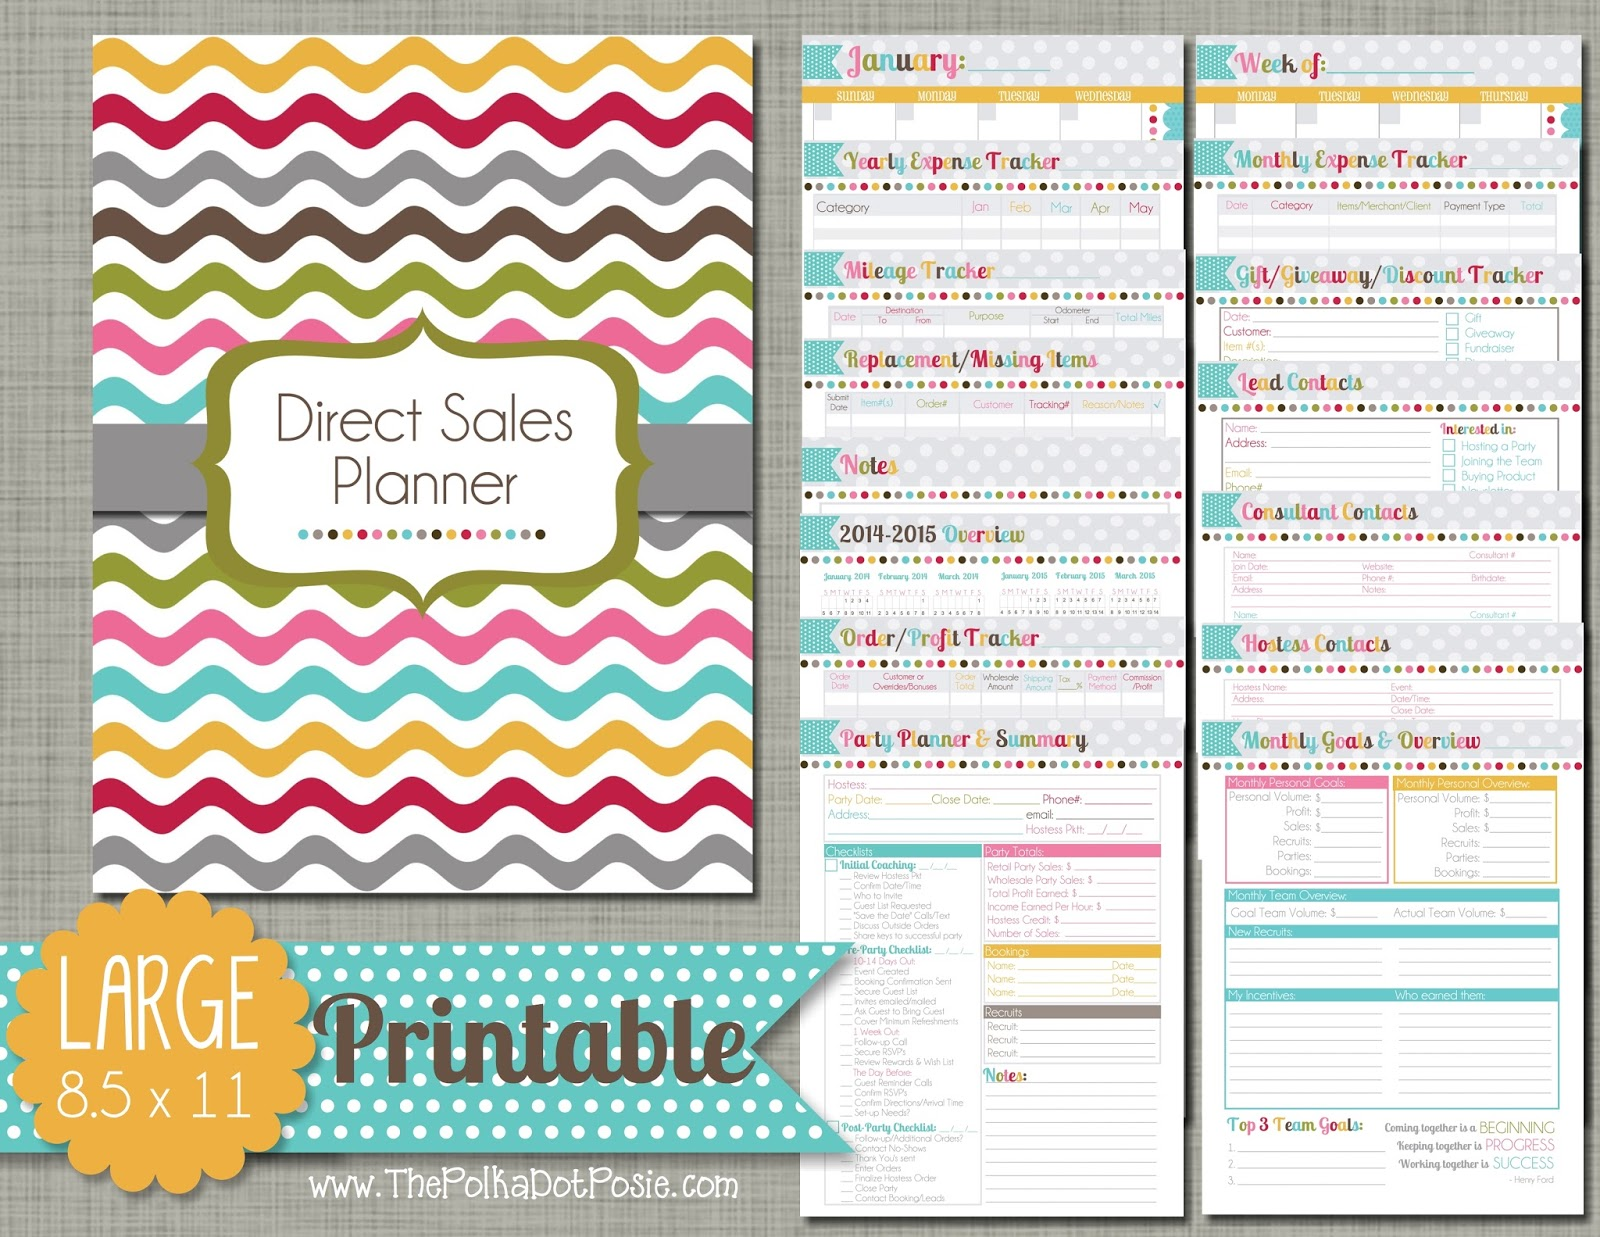 The Polka Dot Posie Direct Sales Planner Instructions